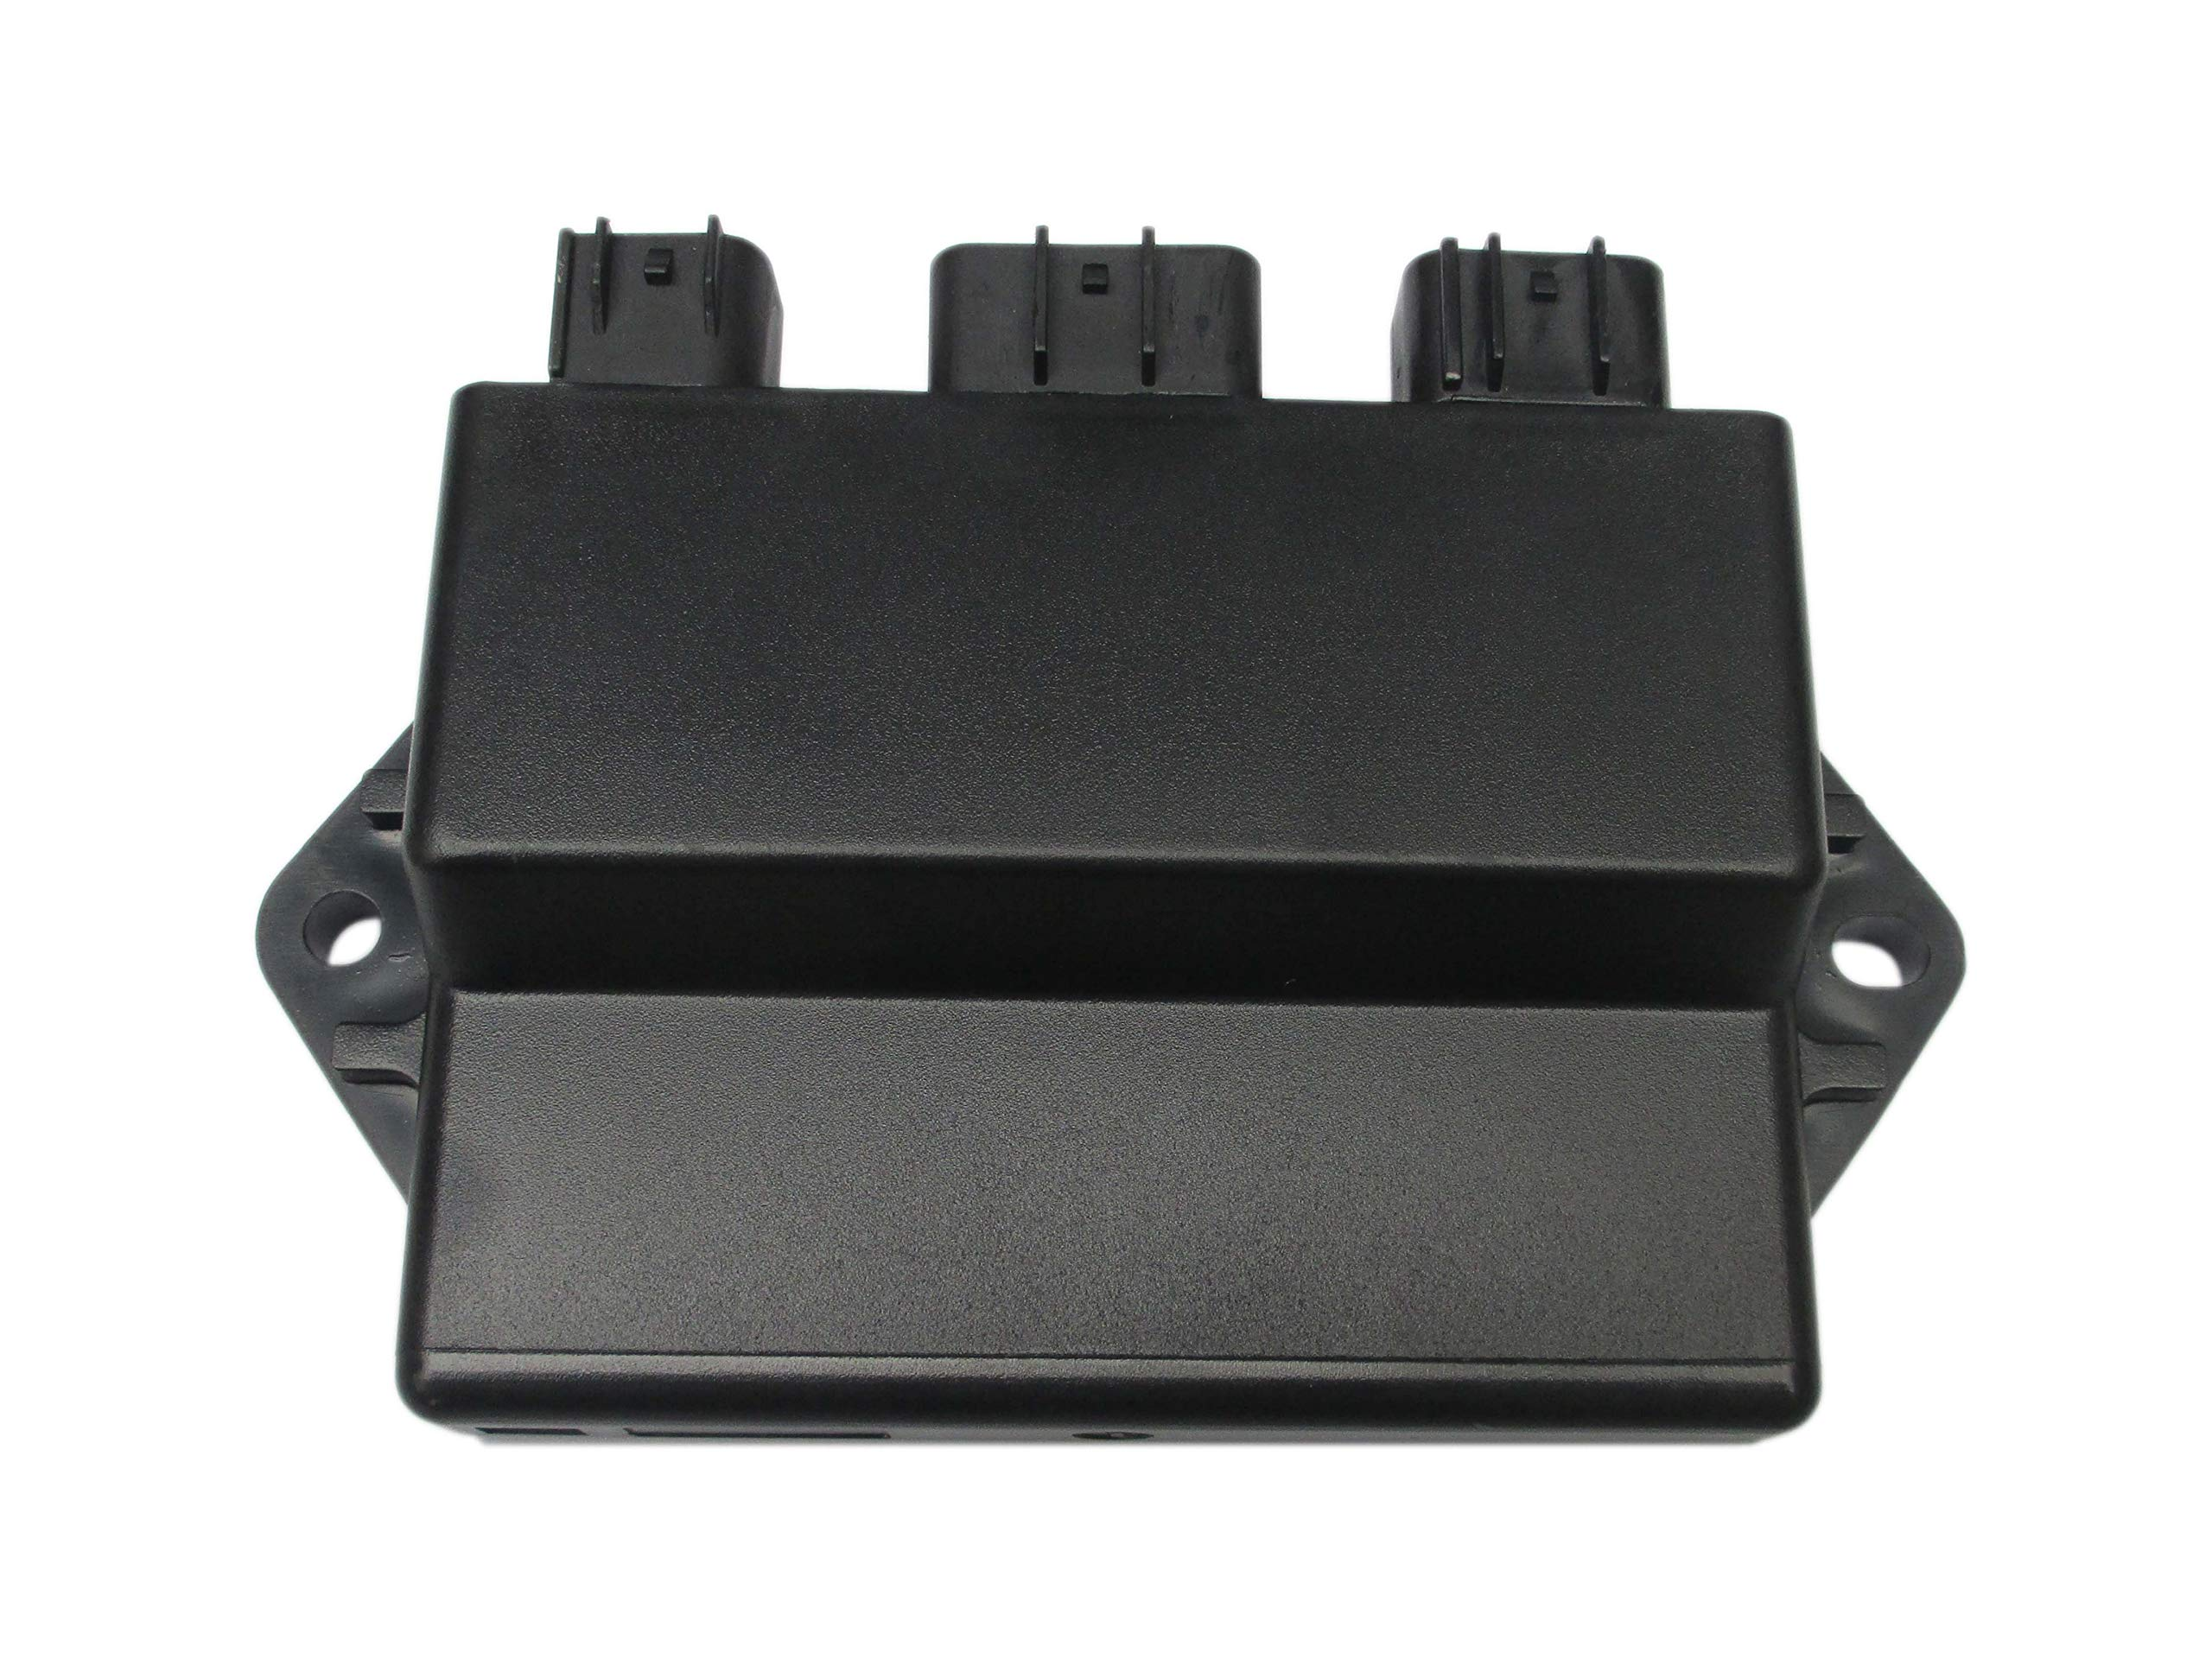 NEW! High Performance CDI Box For Yamaha YFM 450 Grizzly/Kodiak 2004-2007 YFM450 OE Repl.# 5ND-85540-10-00 by JRSAUTO